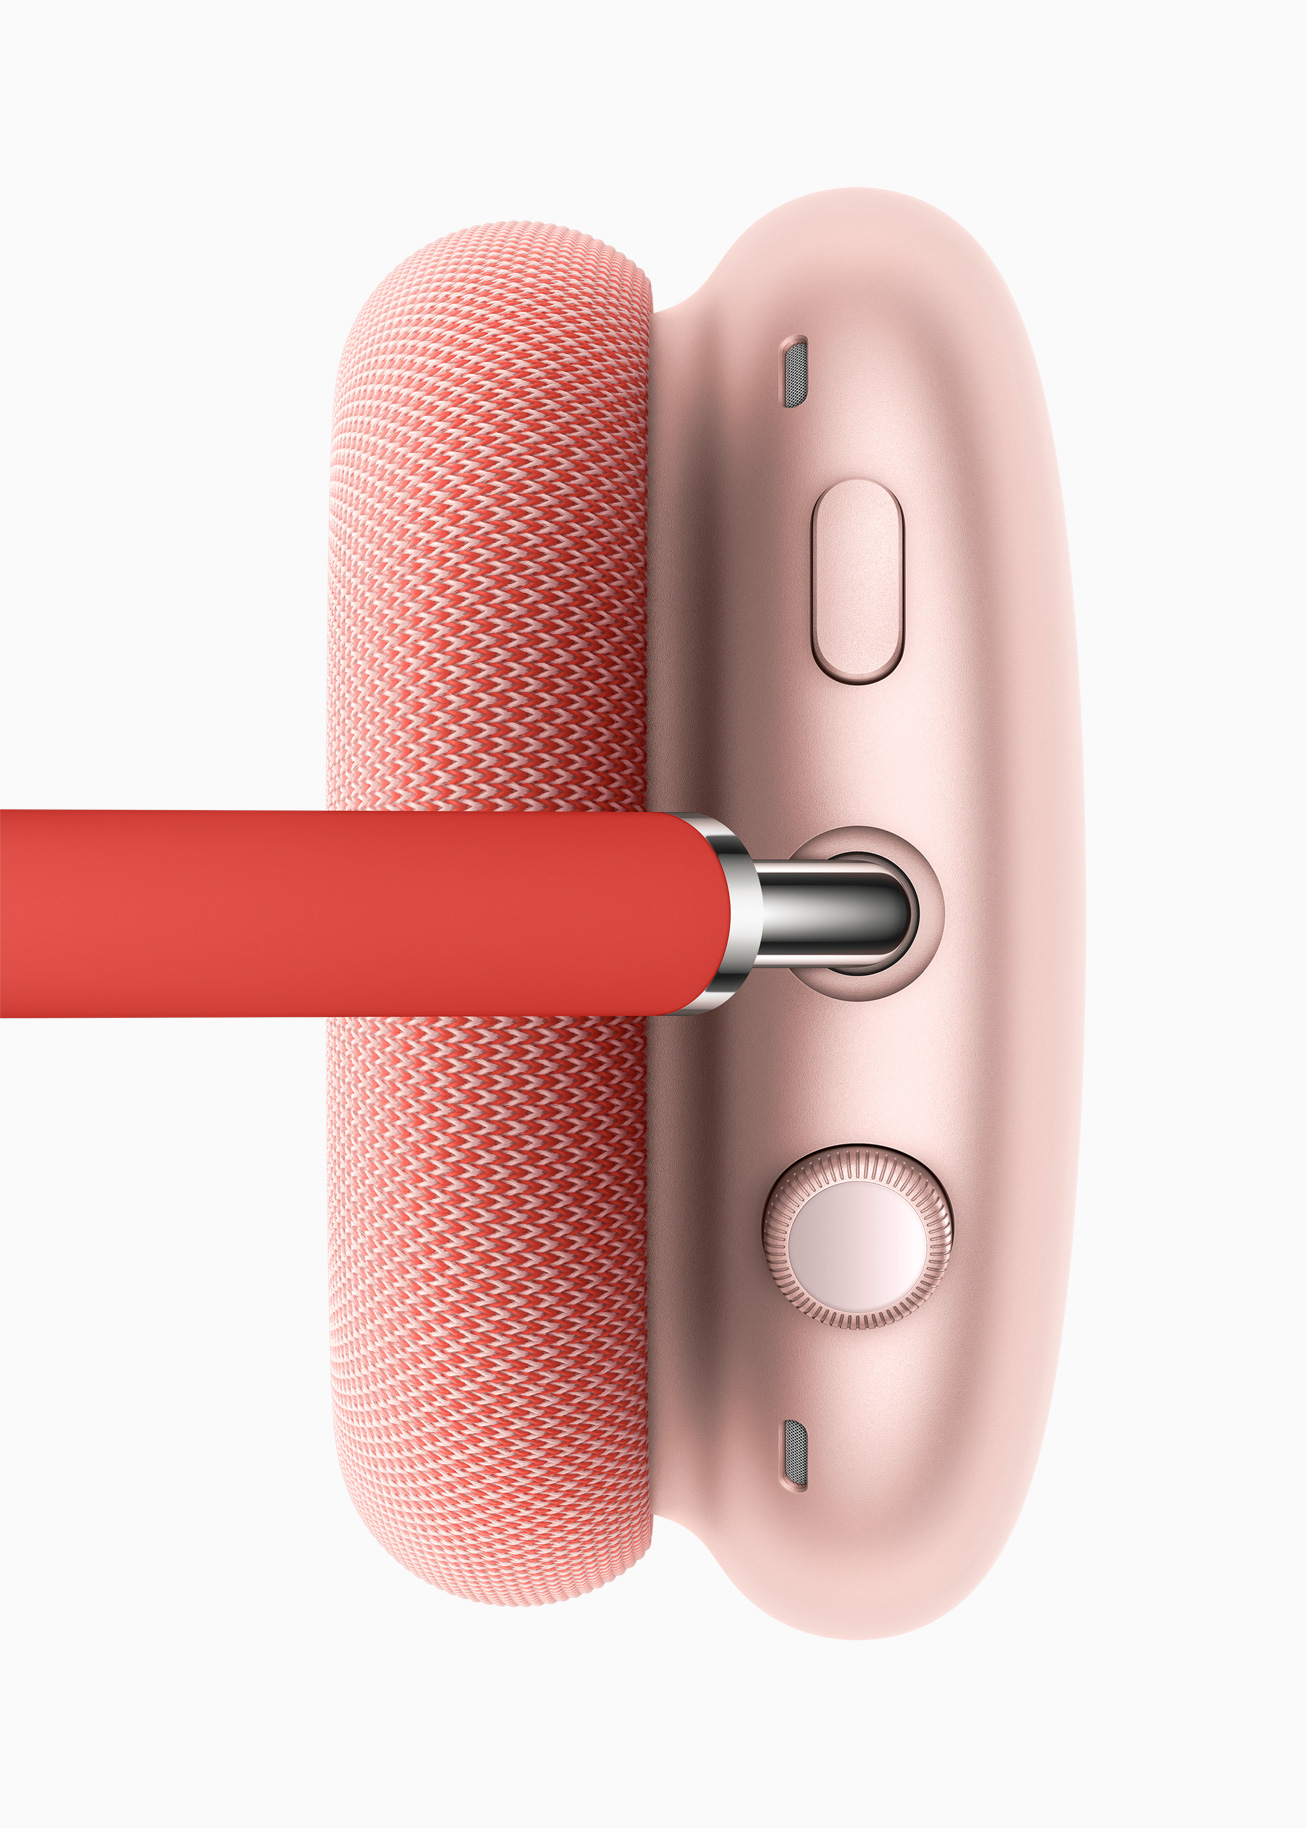 apple airpods-max top-red 12082020 carousel.jpg.large 2x